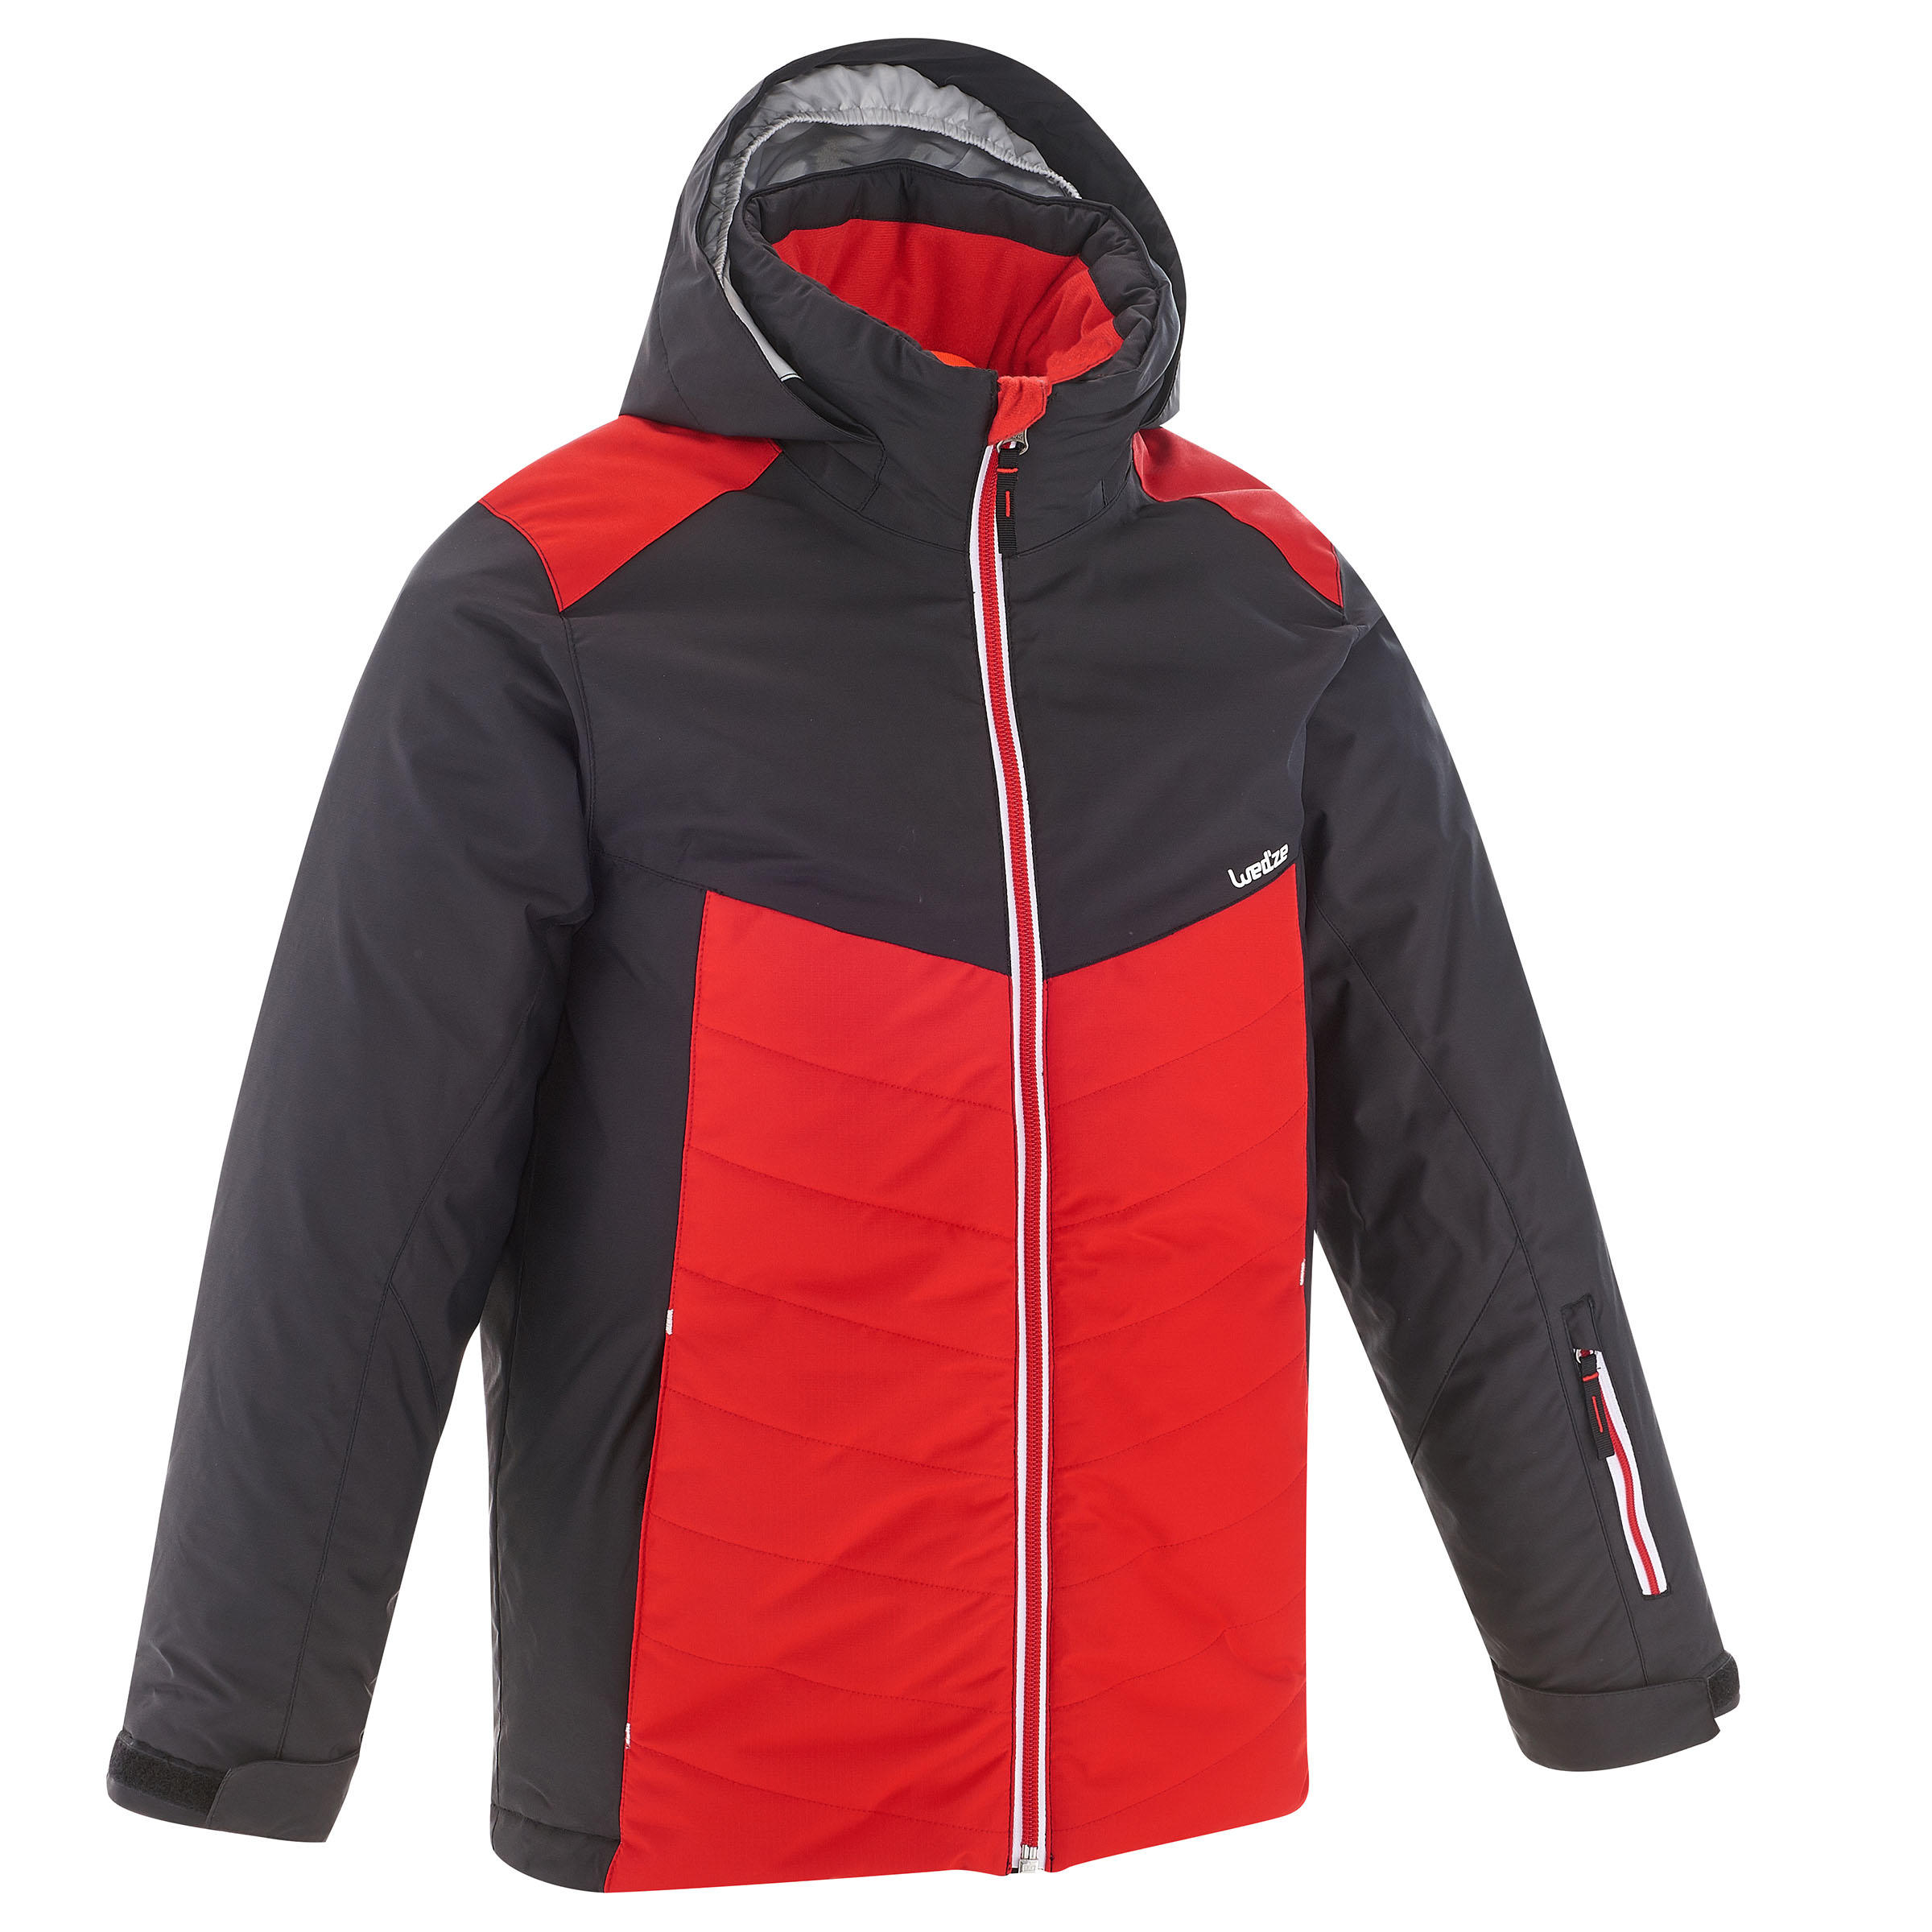 Ski-P Jkt 500 Kids' Ski Jacket - Red